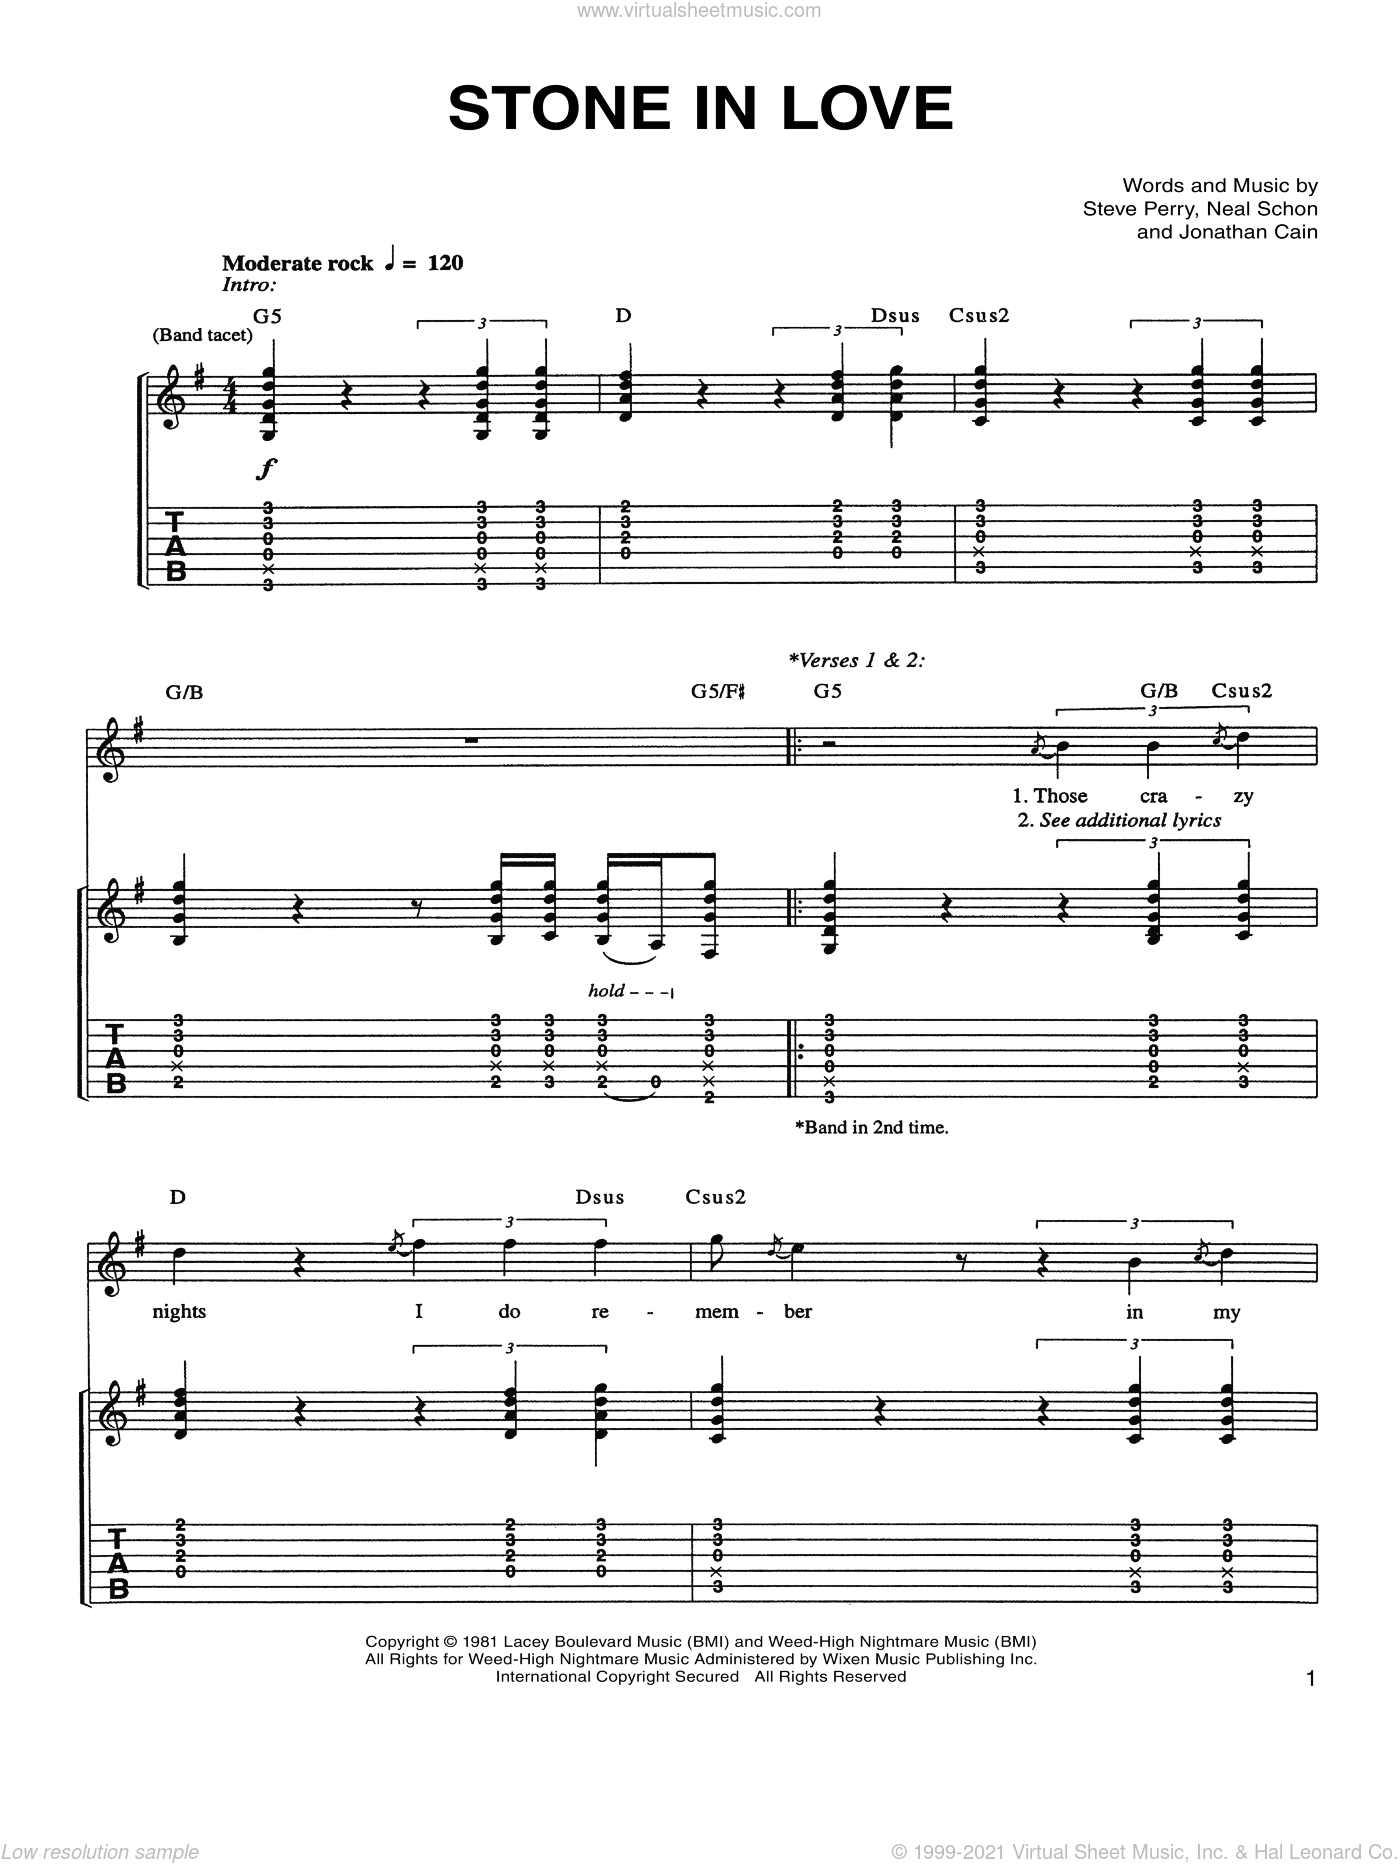 Stone In Love sheet music for guitar (tablature) by Journey, Jonathan Cain, Neal Schon and Steve Perry, intermediate